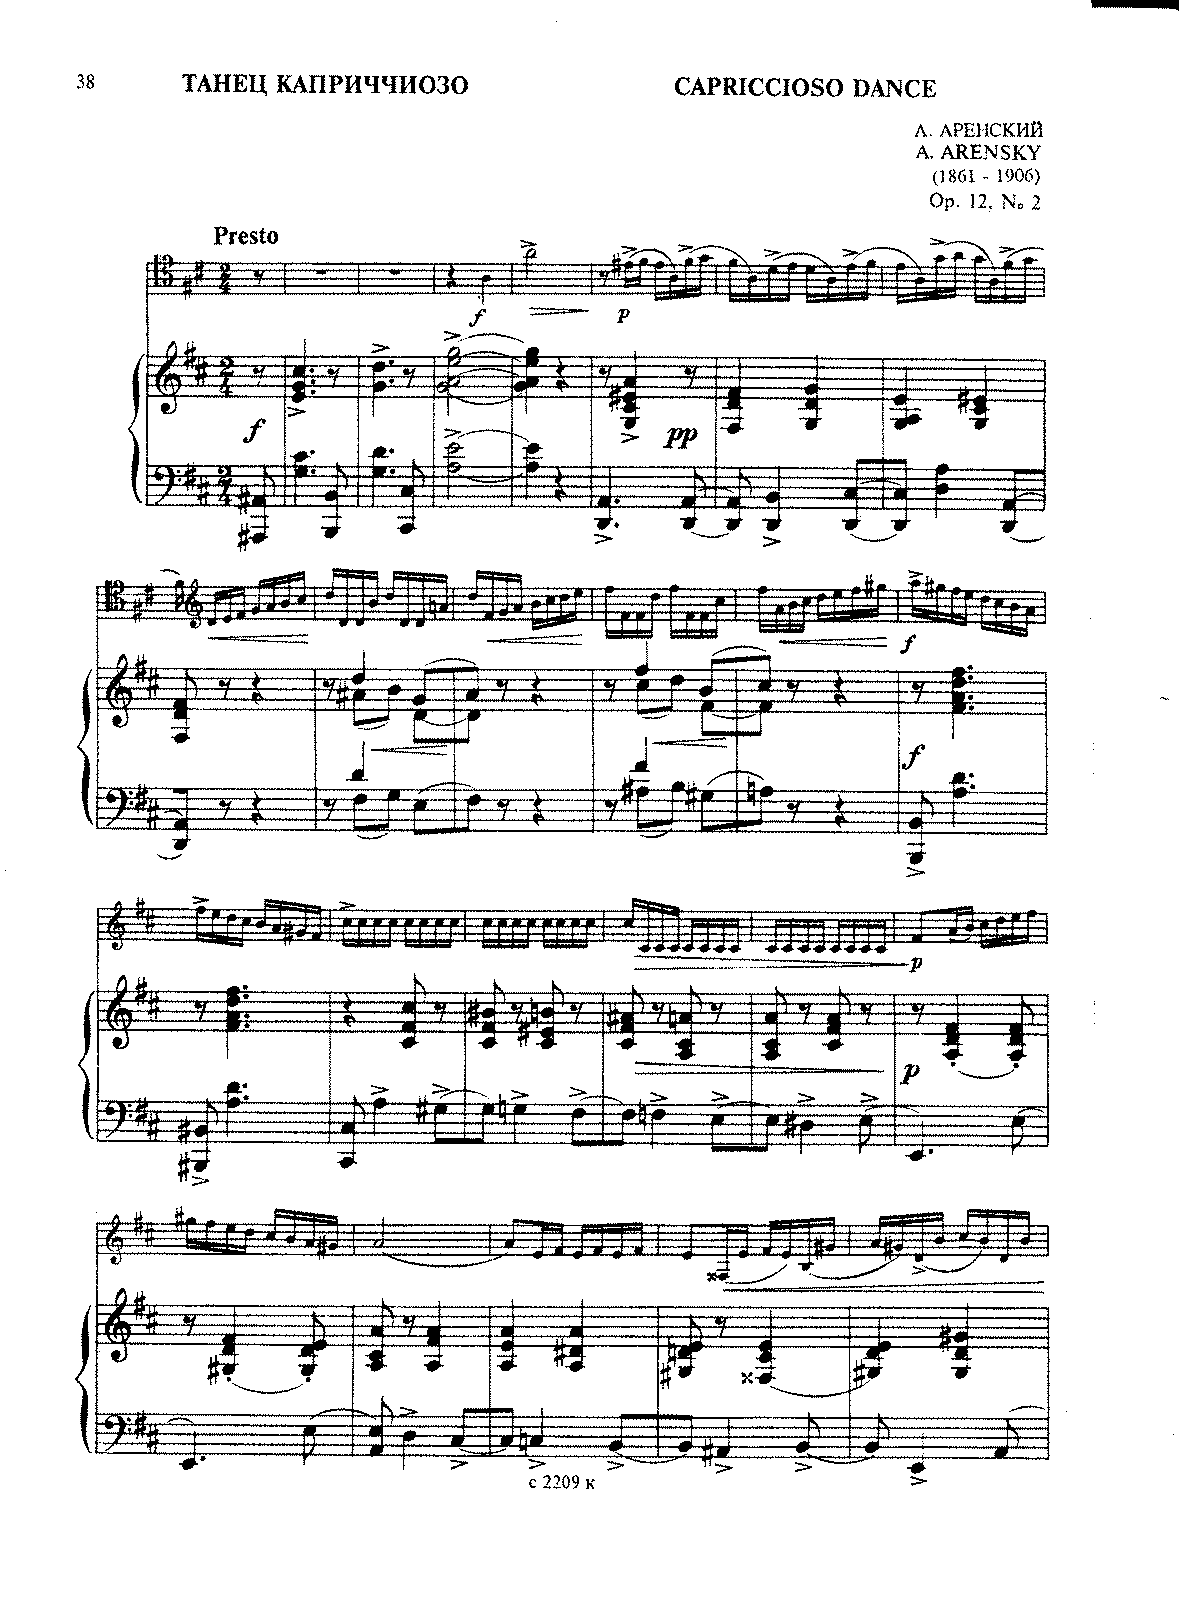 Arensky Capriccioso Dance Op.12 No.2 cello and piano.pdf